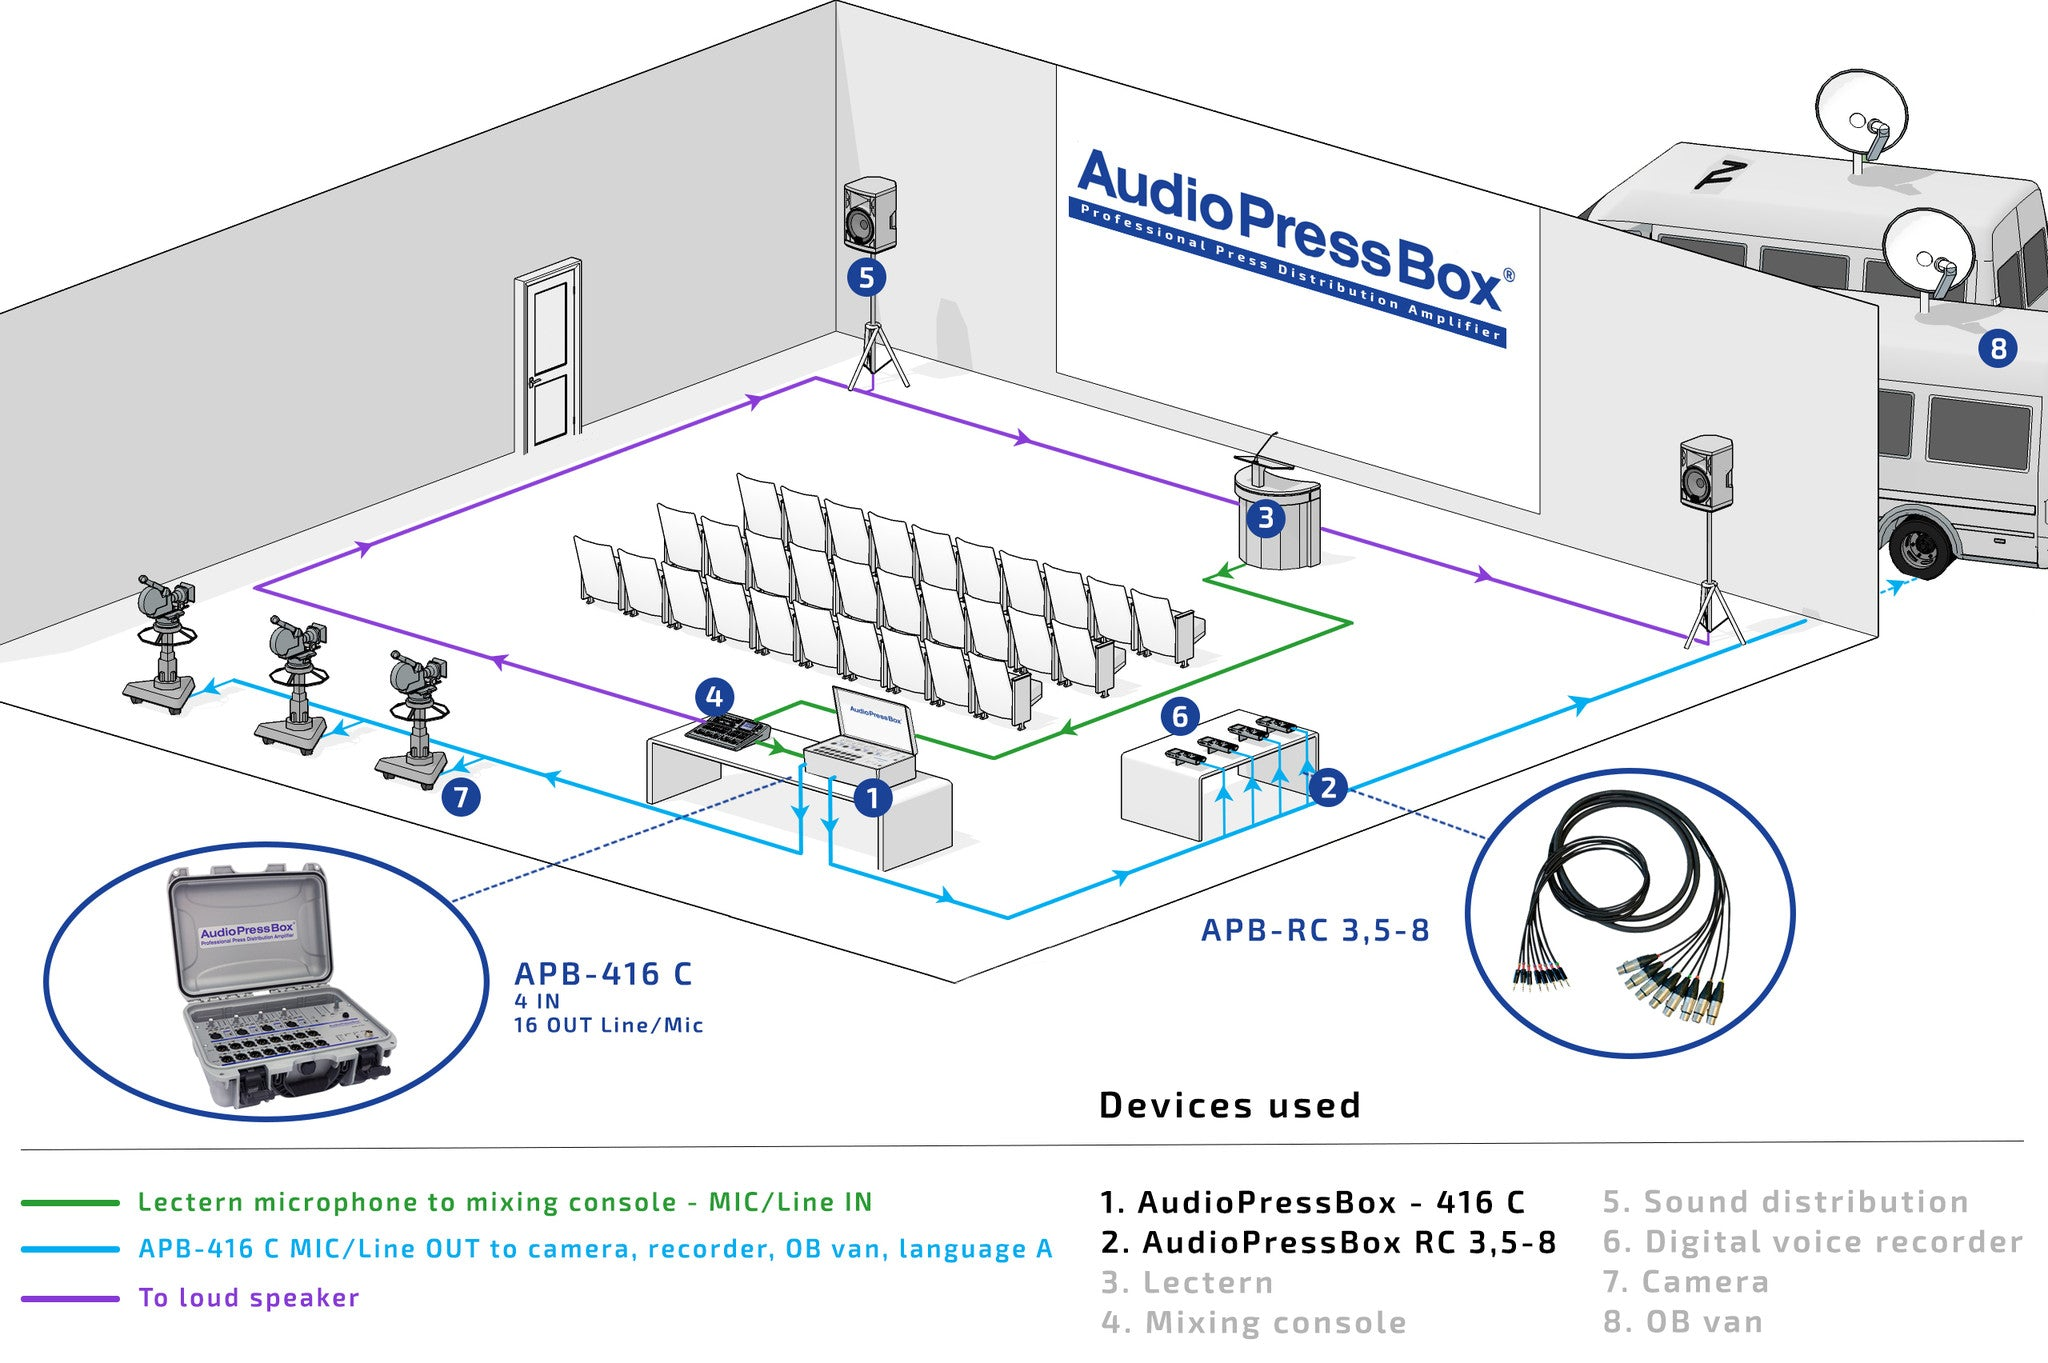 AudioPressBox, Mult Box, PressBox, Mult Box, Press Patch Box, Pressesplitter, APB- 416 C